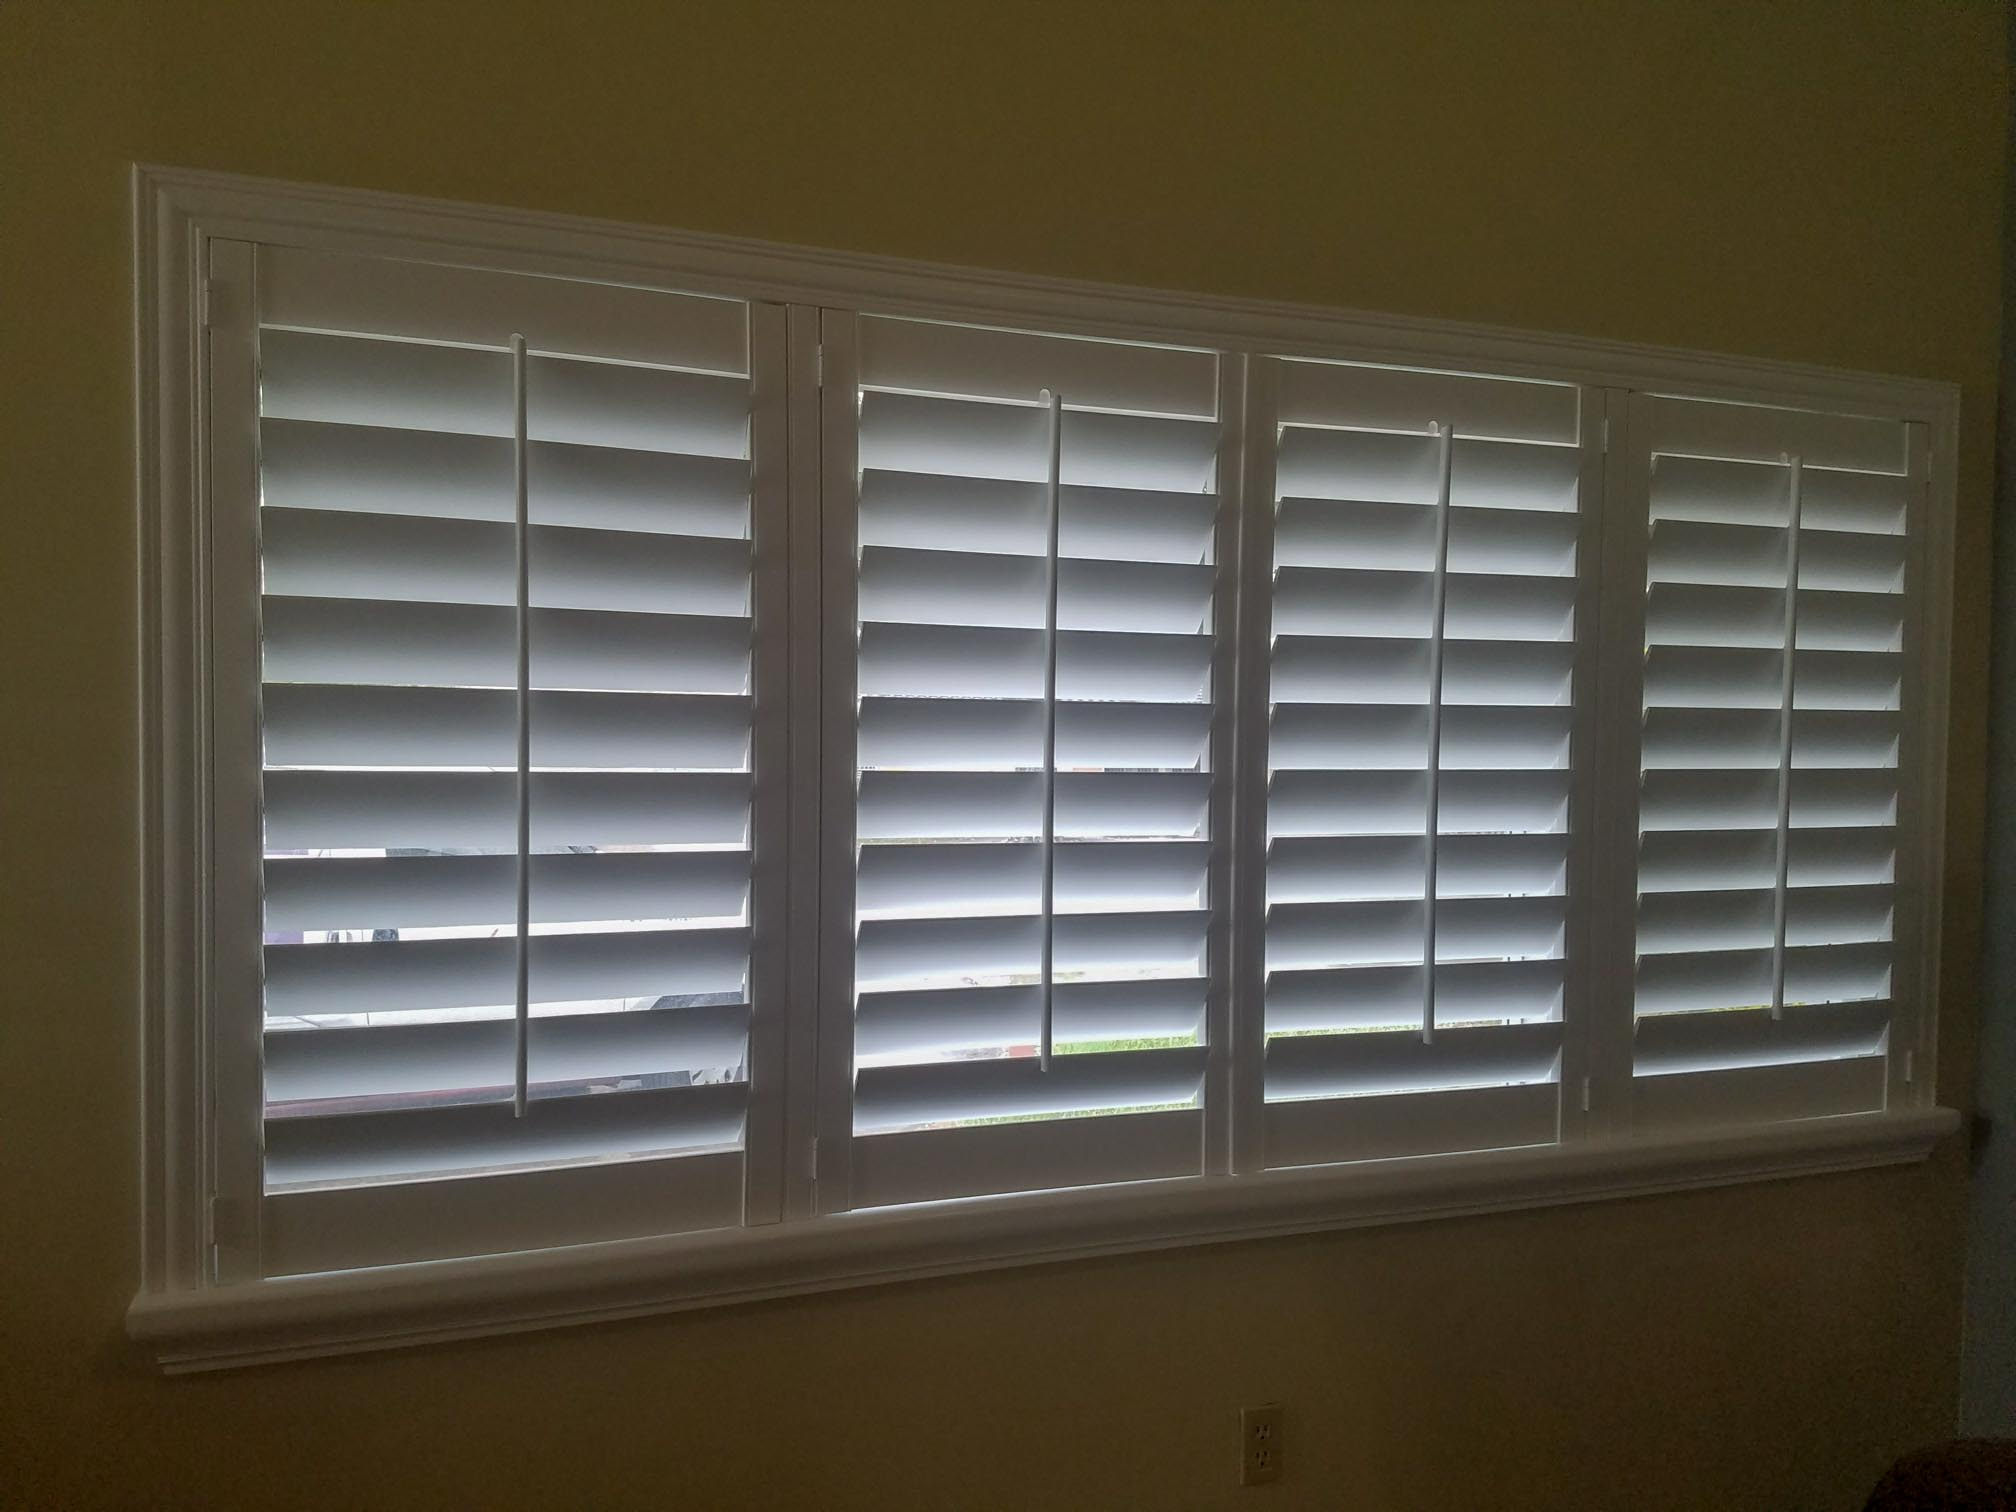 plantation shutters gallery PLANTATION SHUTTERS GALLERY 20180203 113328